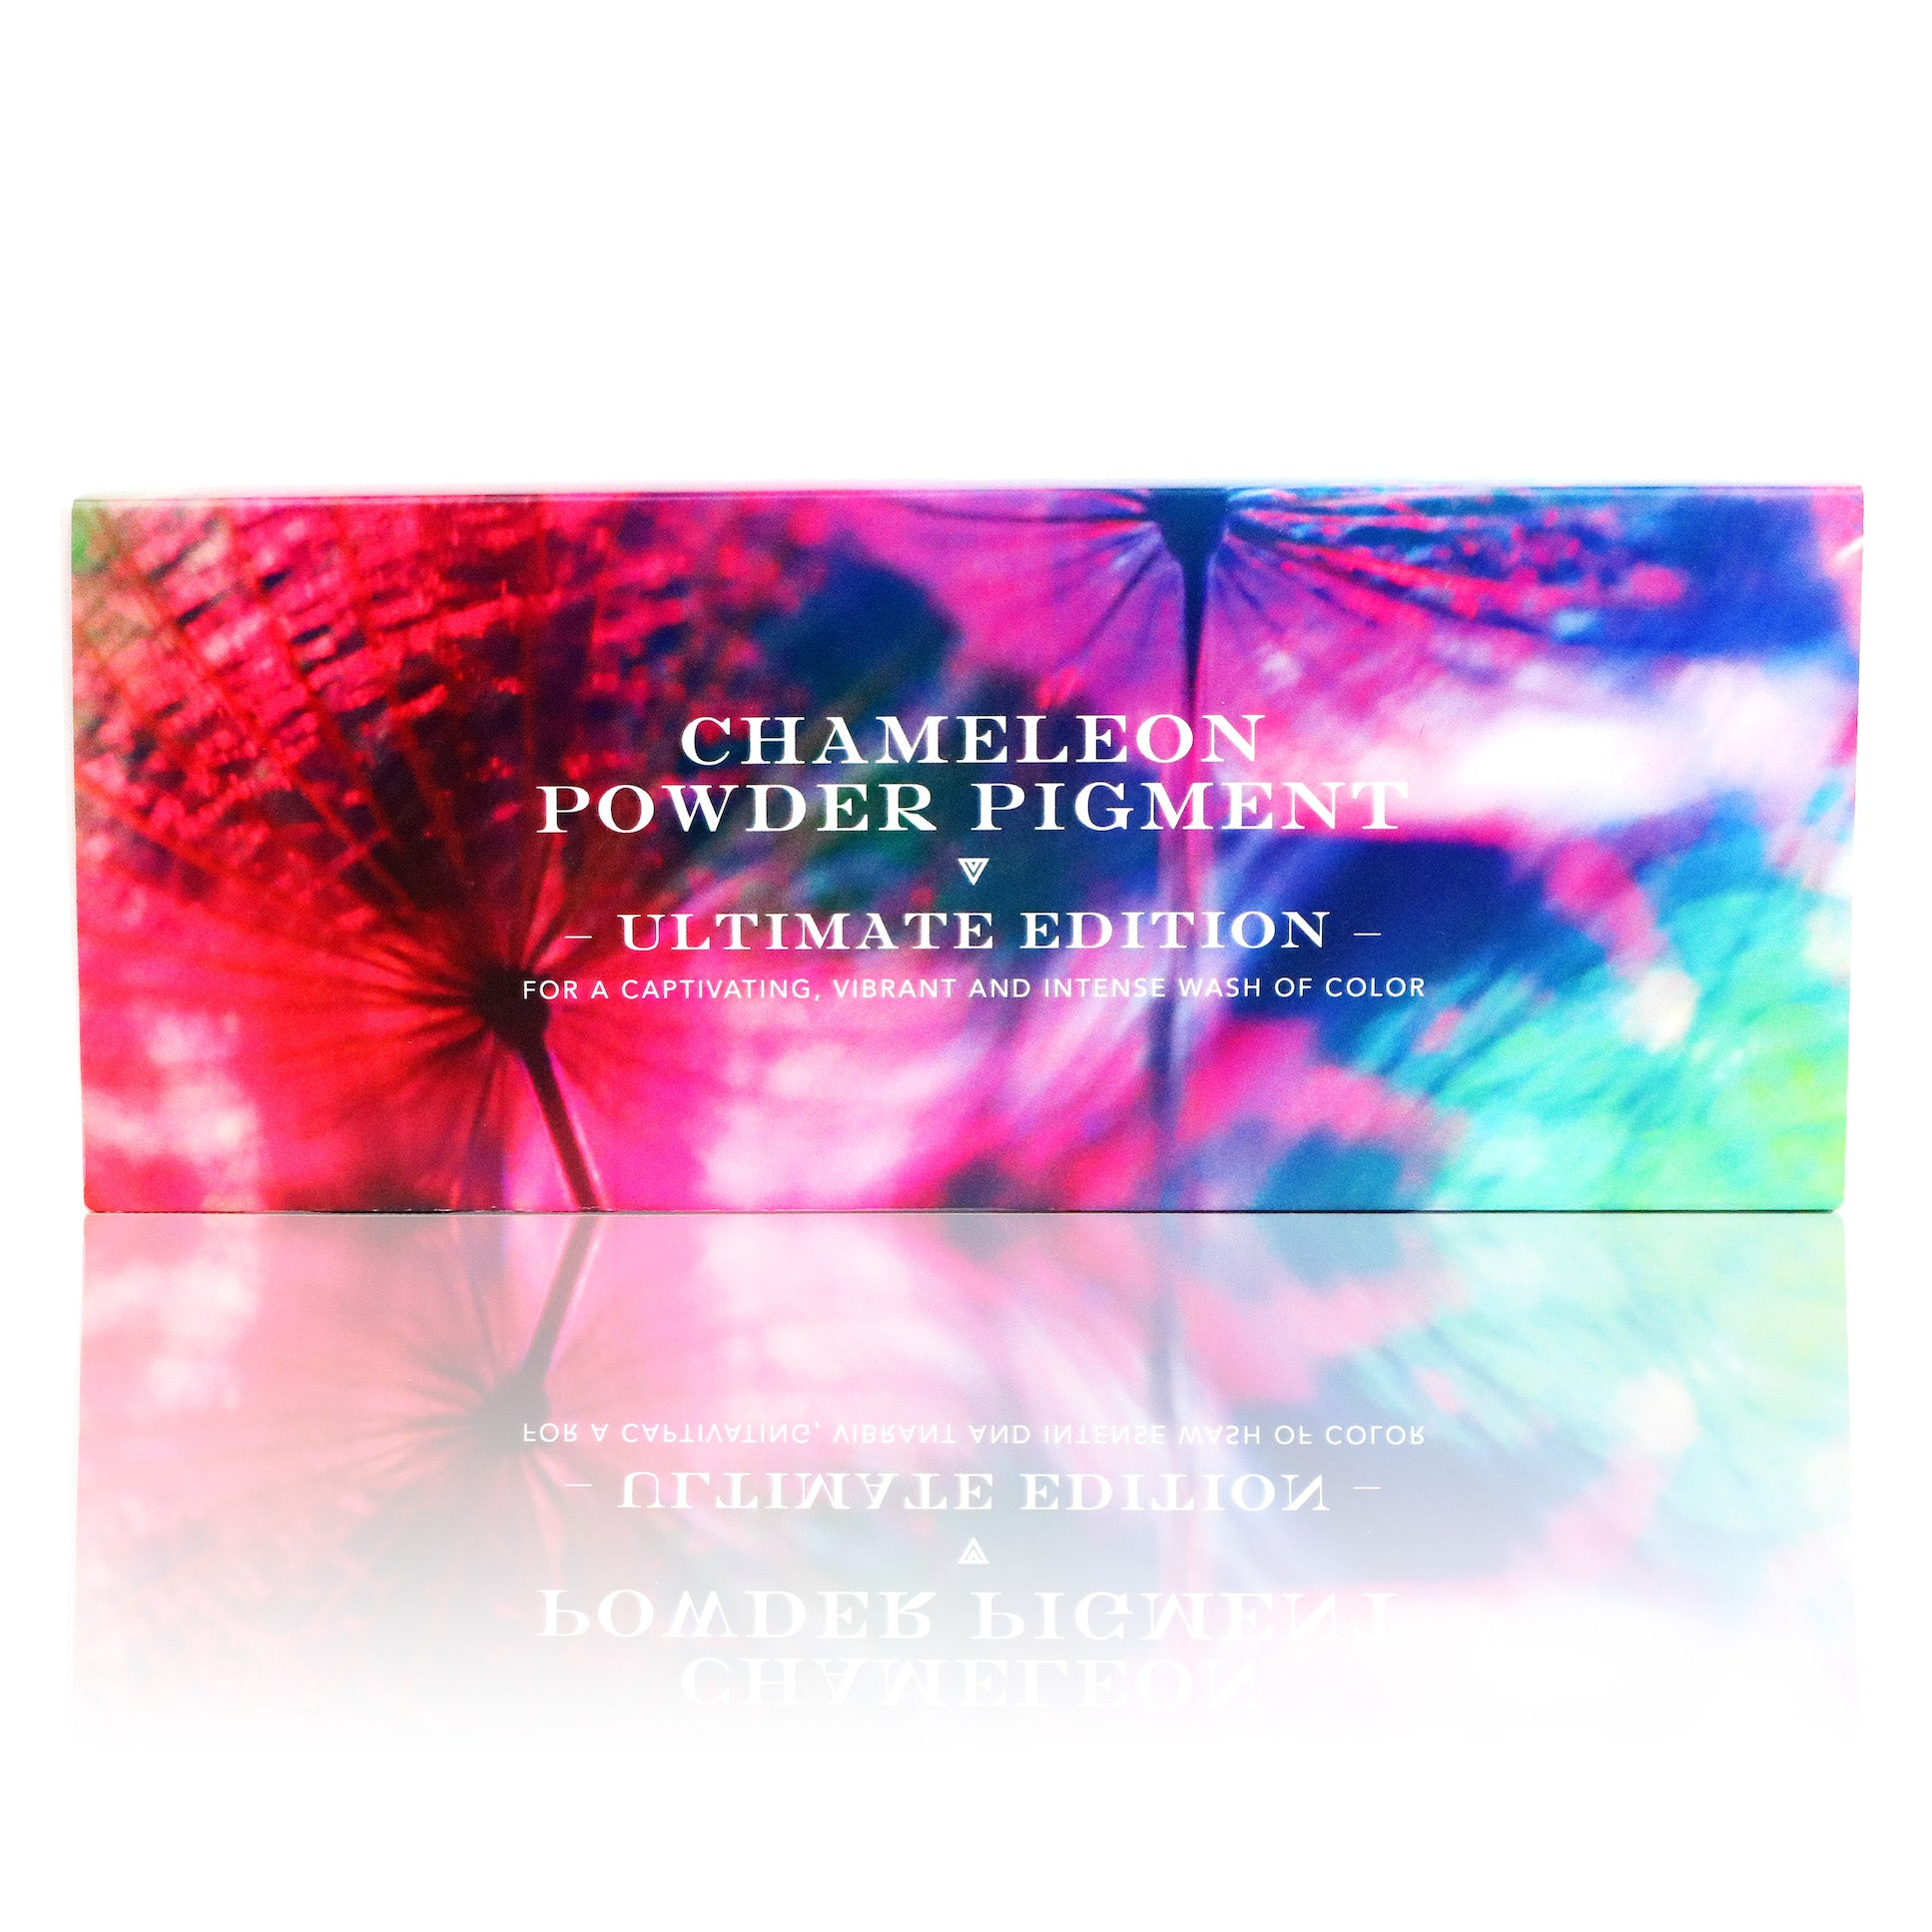 Chameleon Powder Pigment Ultimate Edition